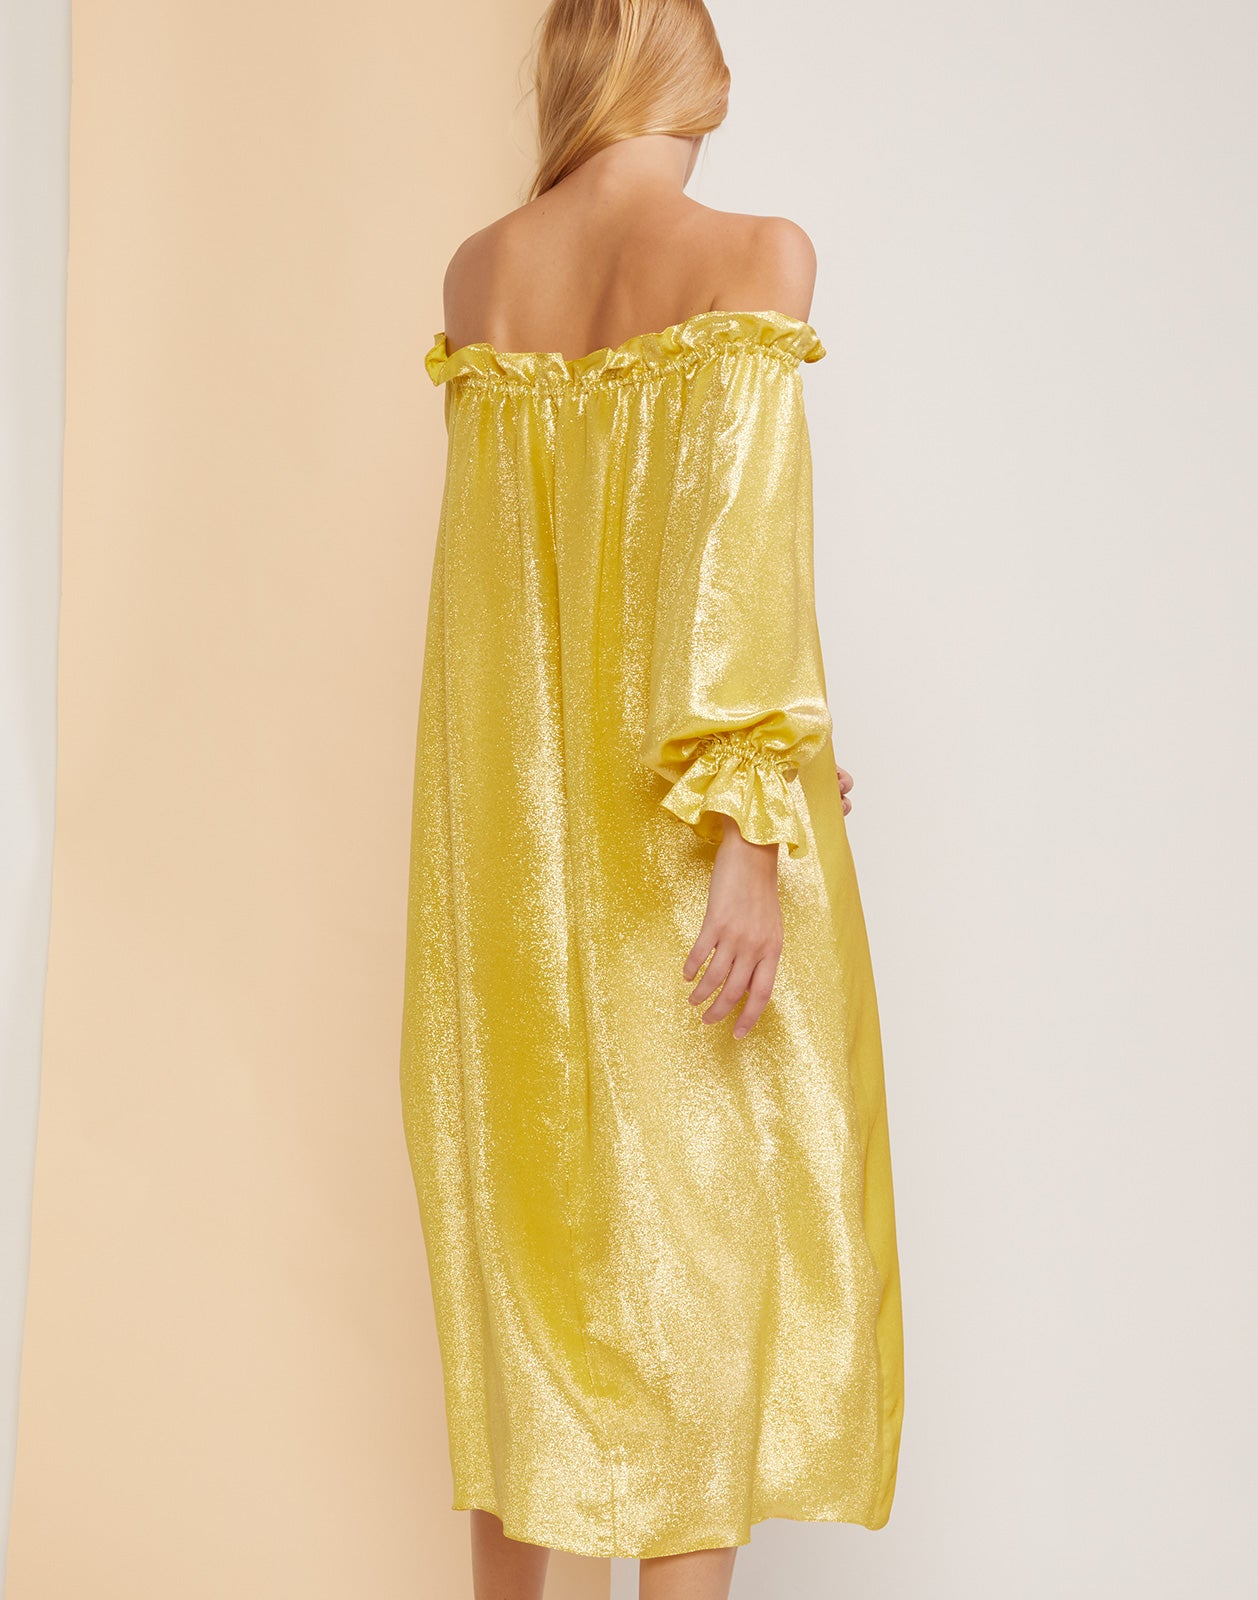 Back view of the yellow metallic shimmer dress.